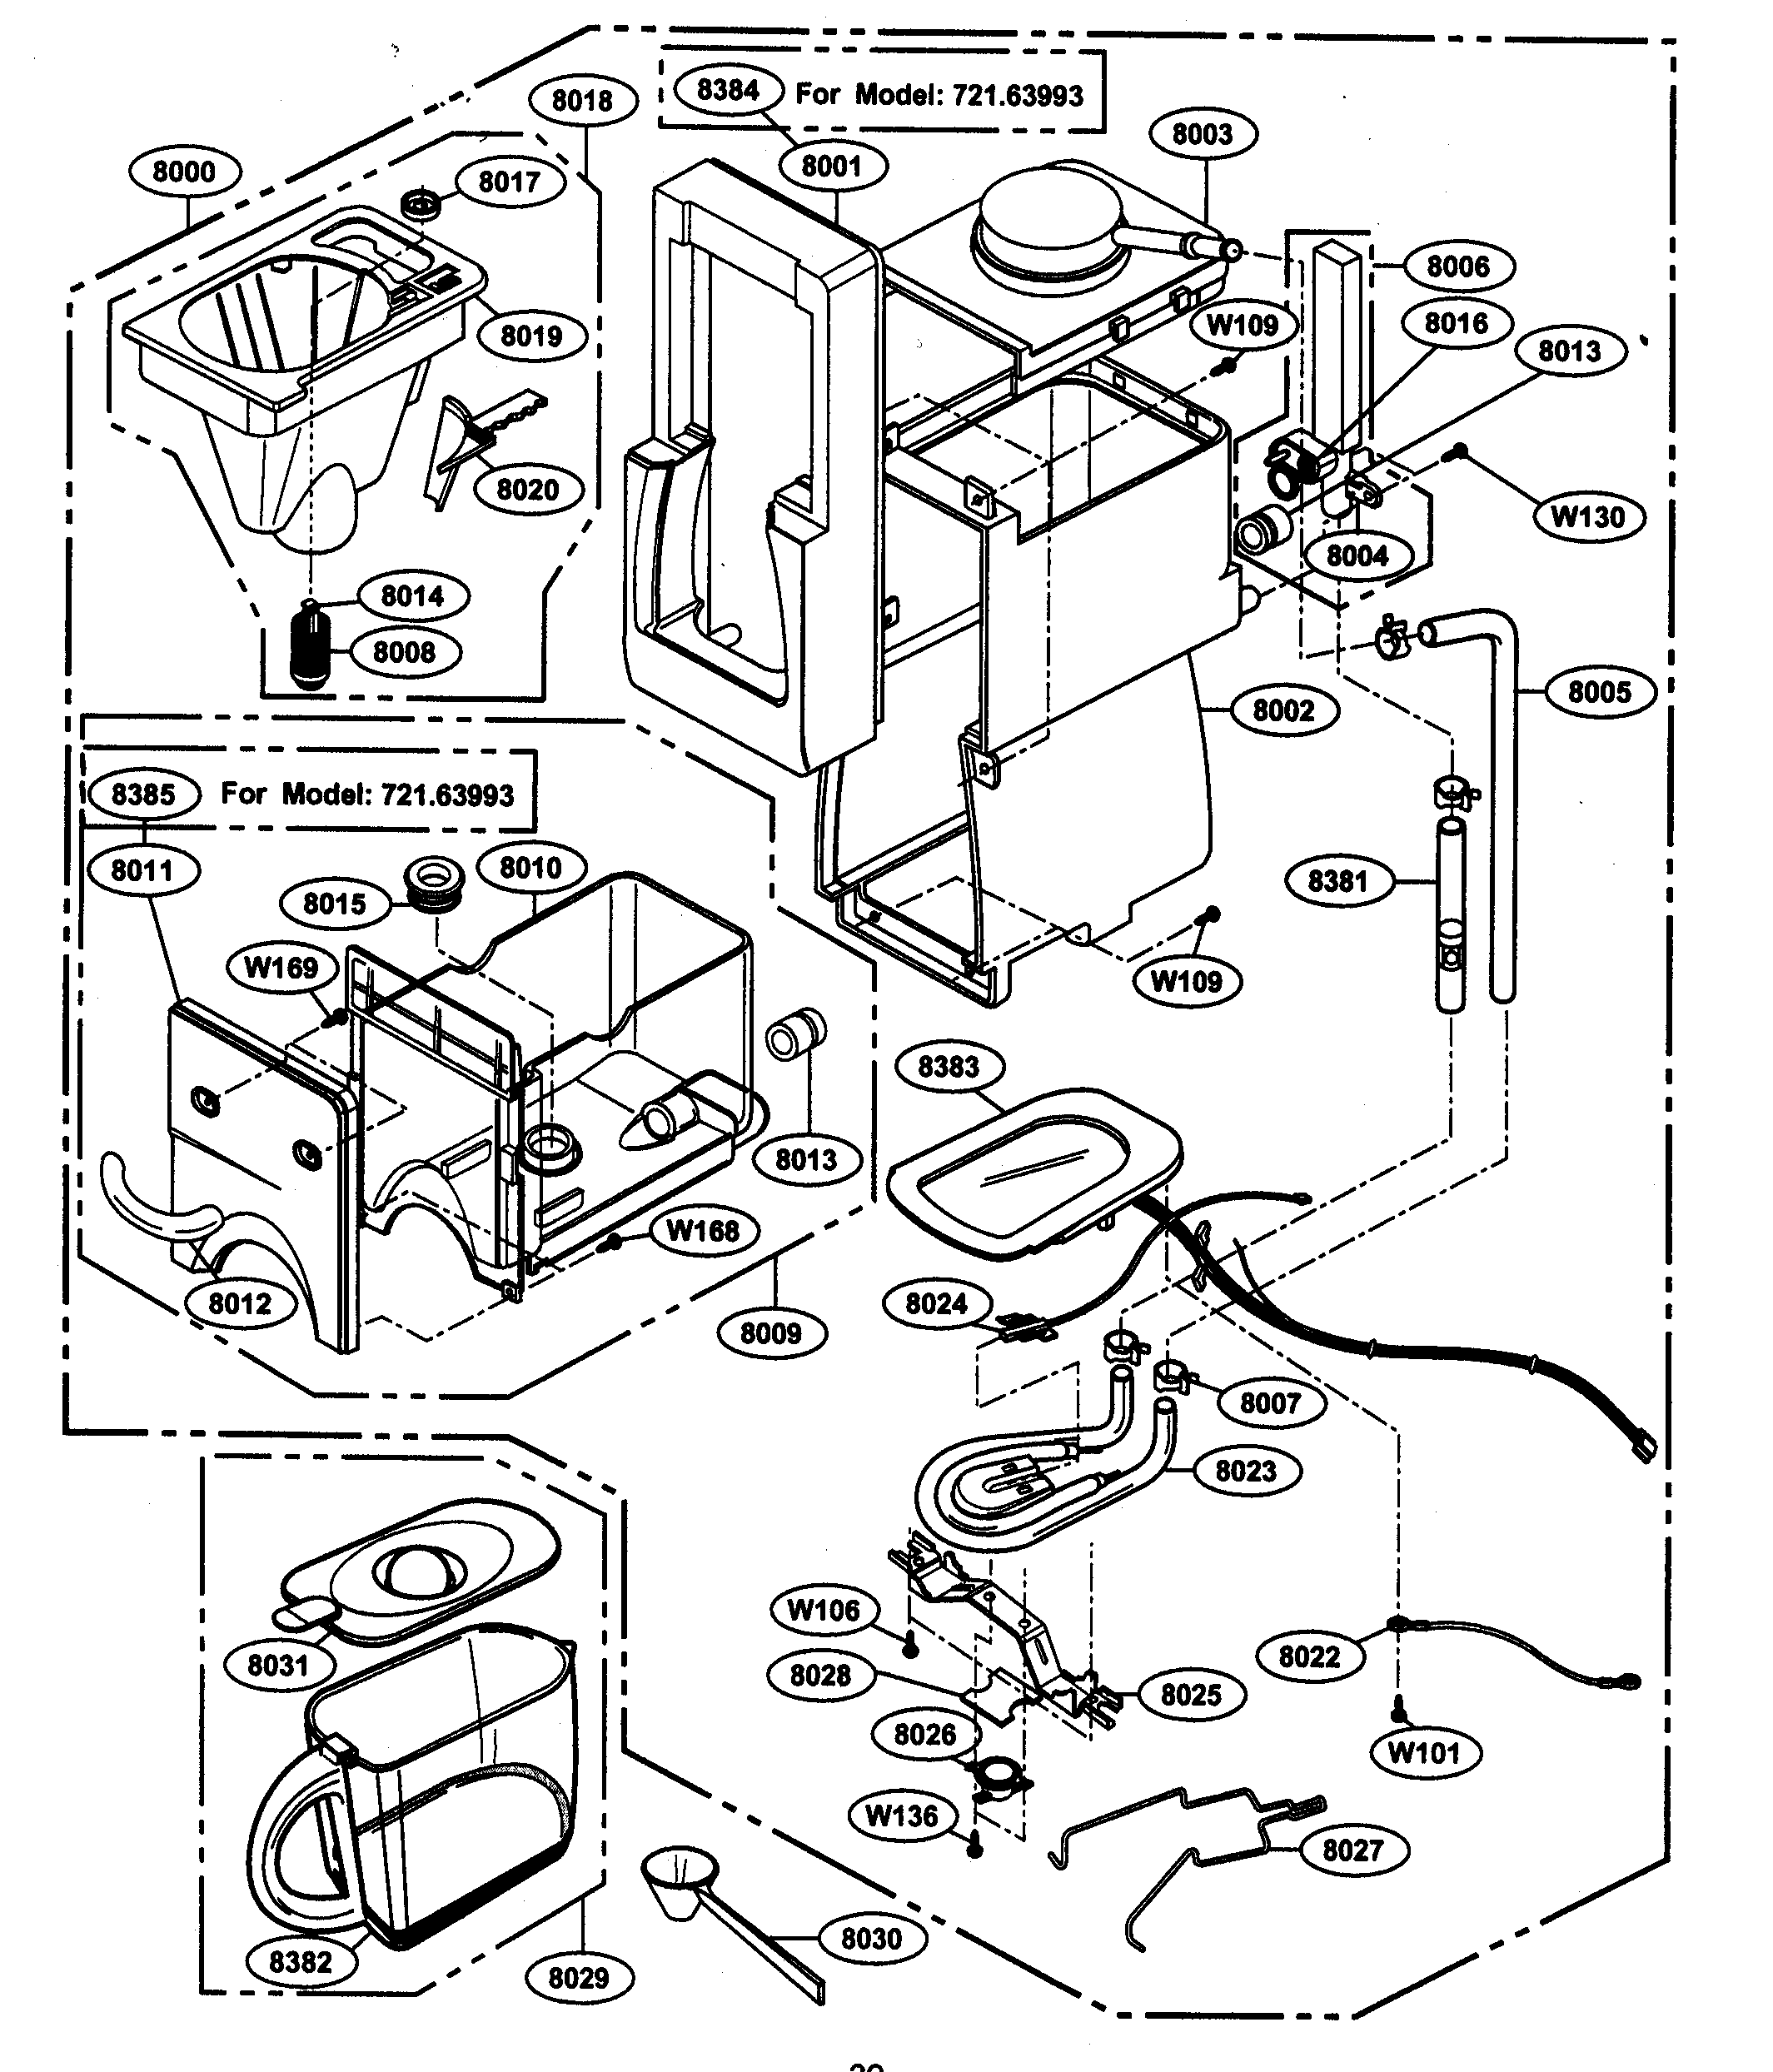 2129x2488 Patent Us5463932 Coffee Maker Google Patents Drawing ~ Wiring